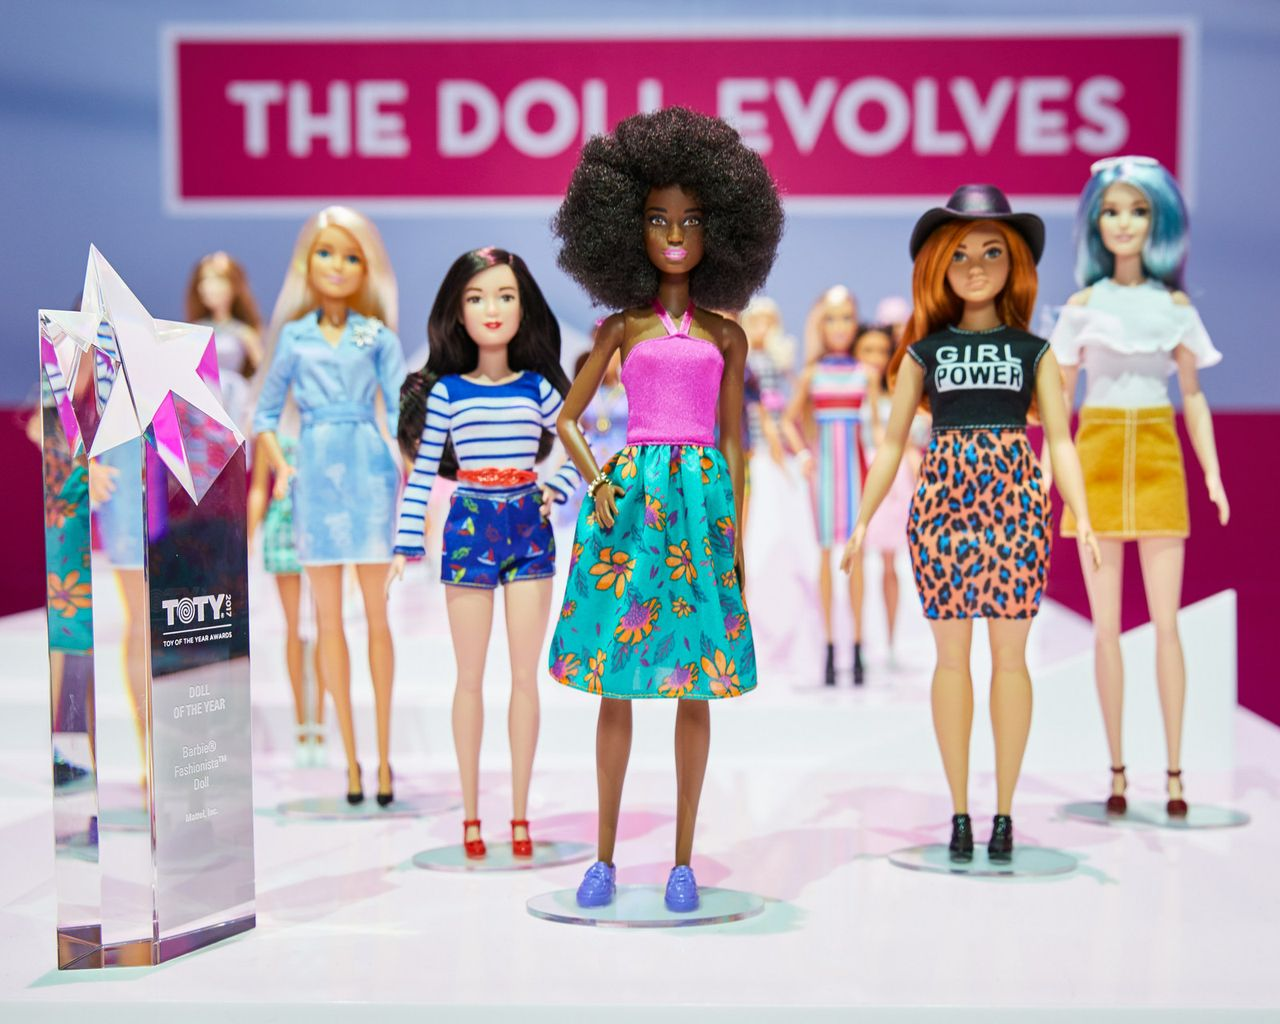 Toys For Awards : Mattel wins toy of the year award for barbie fashionistas